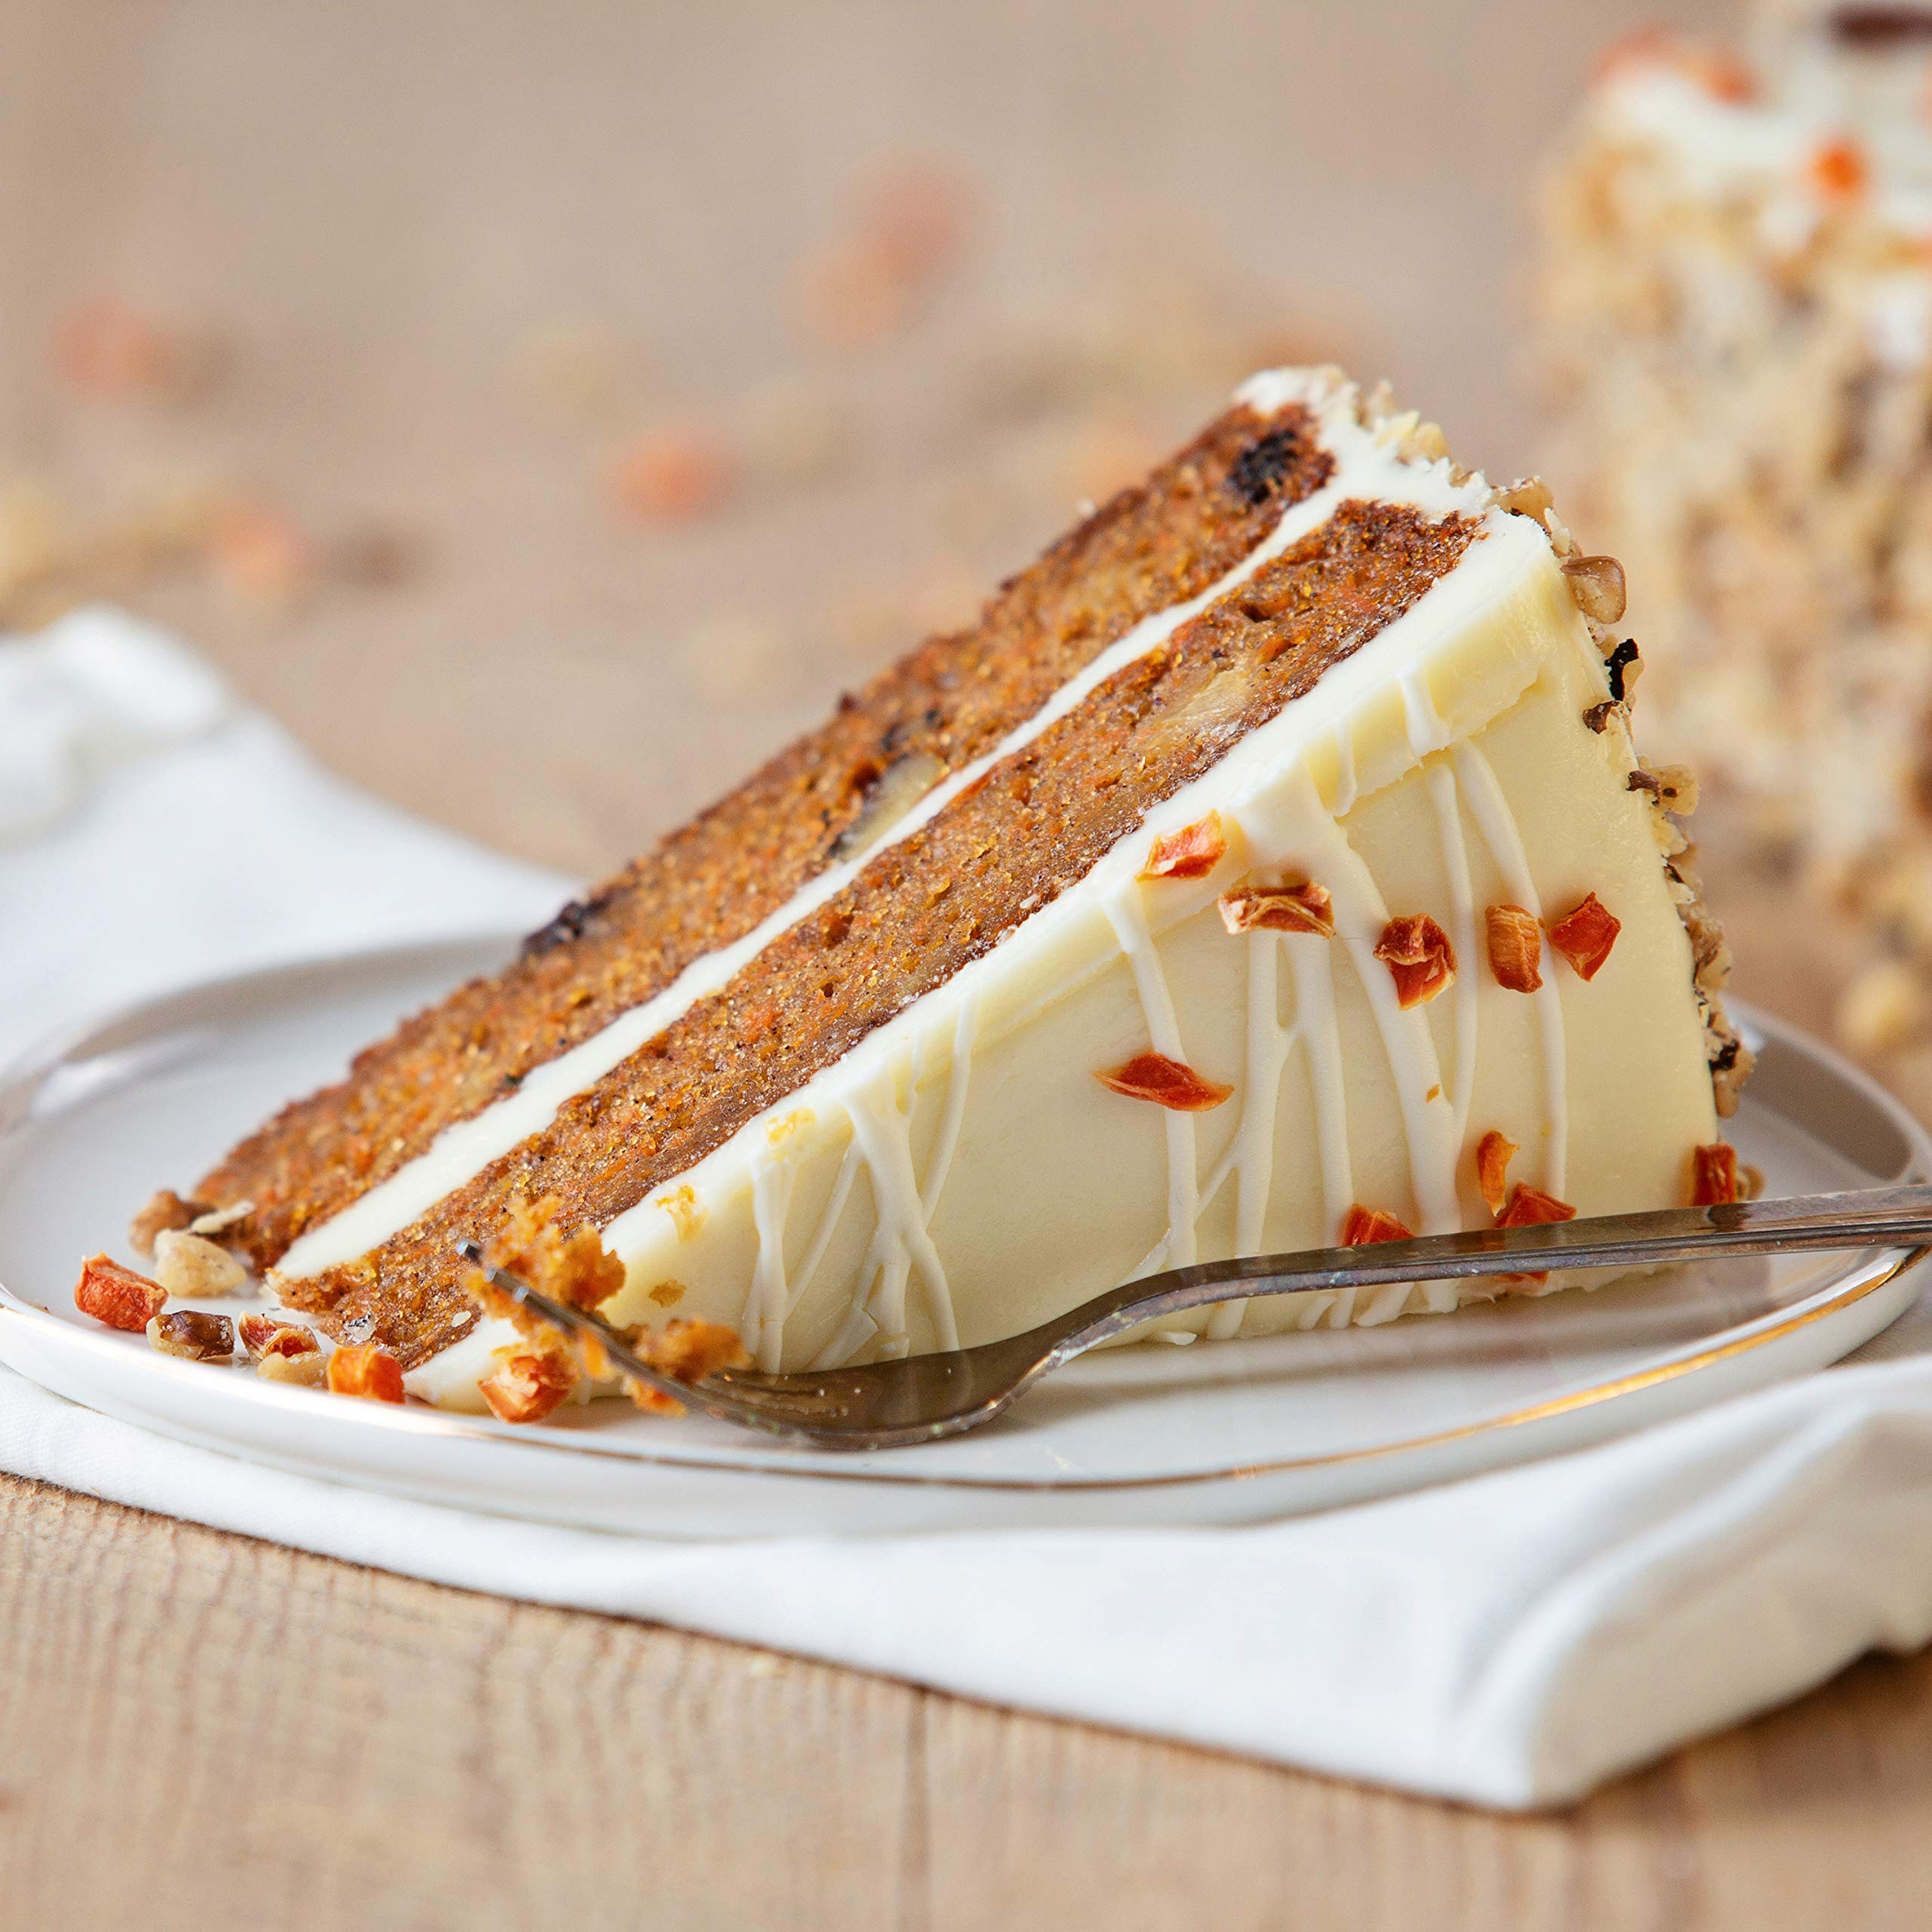 Sweet Street Iced Two Layer Carrot Cake 4.5 lb (14 Slices) Pack of 2